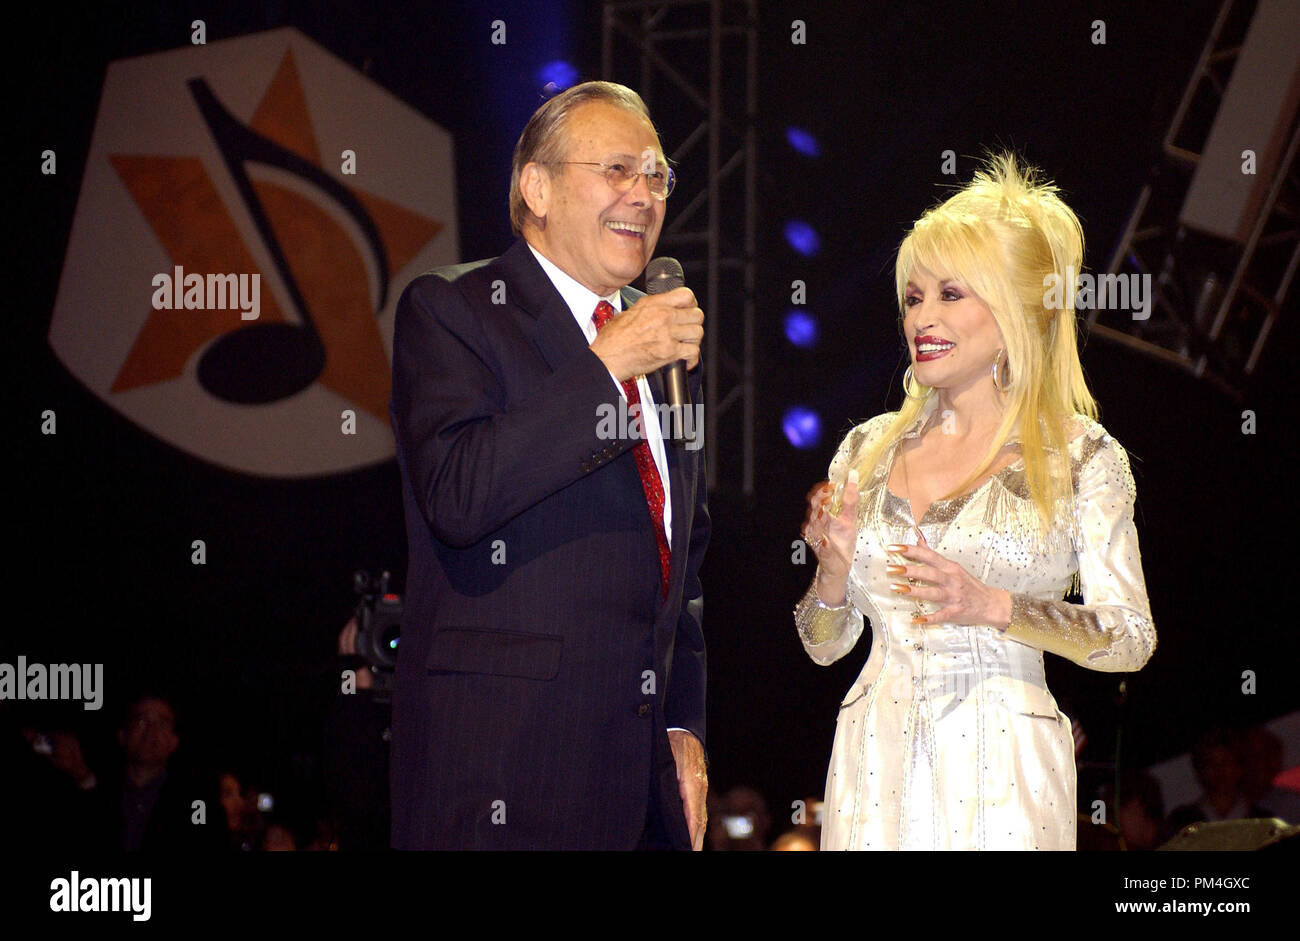 Secretary of Defense Donald H. Rumsfeld joins country music legend Dolly Parton on stage at the Grand Ole Opry during a live broadcast in Nashville, Tenn., on April 23, 2005.  Rumsfeld visited Nashville to thank Parton, the Grand Ole Opry, and the American people for their support of U.S. troops.  DoD photo by Tech. Sgt. Cherie A. Thurlby, U.S. Air Force. (Released)     File Reference # 1003_132THA - Stock Image